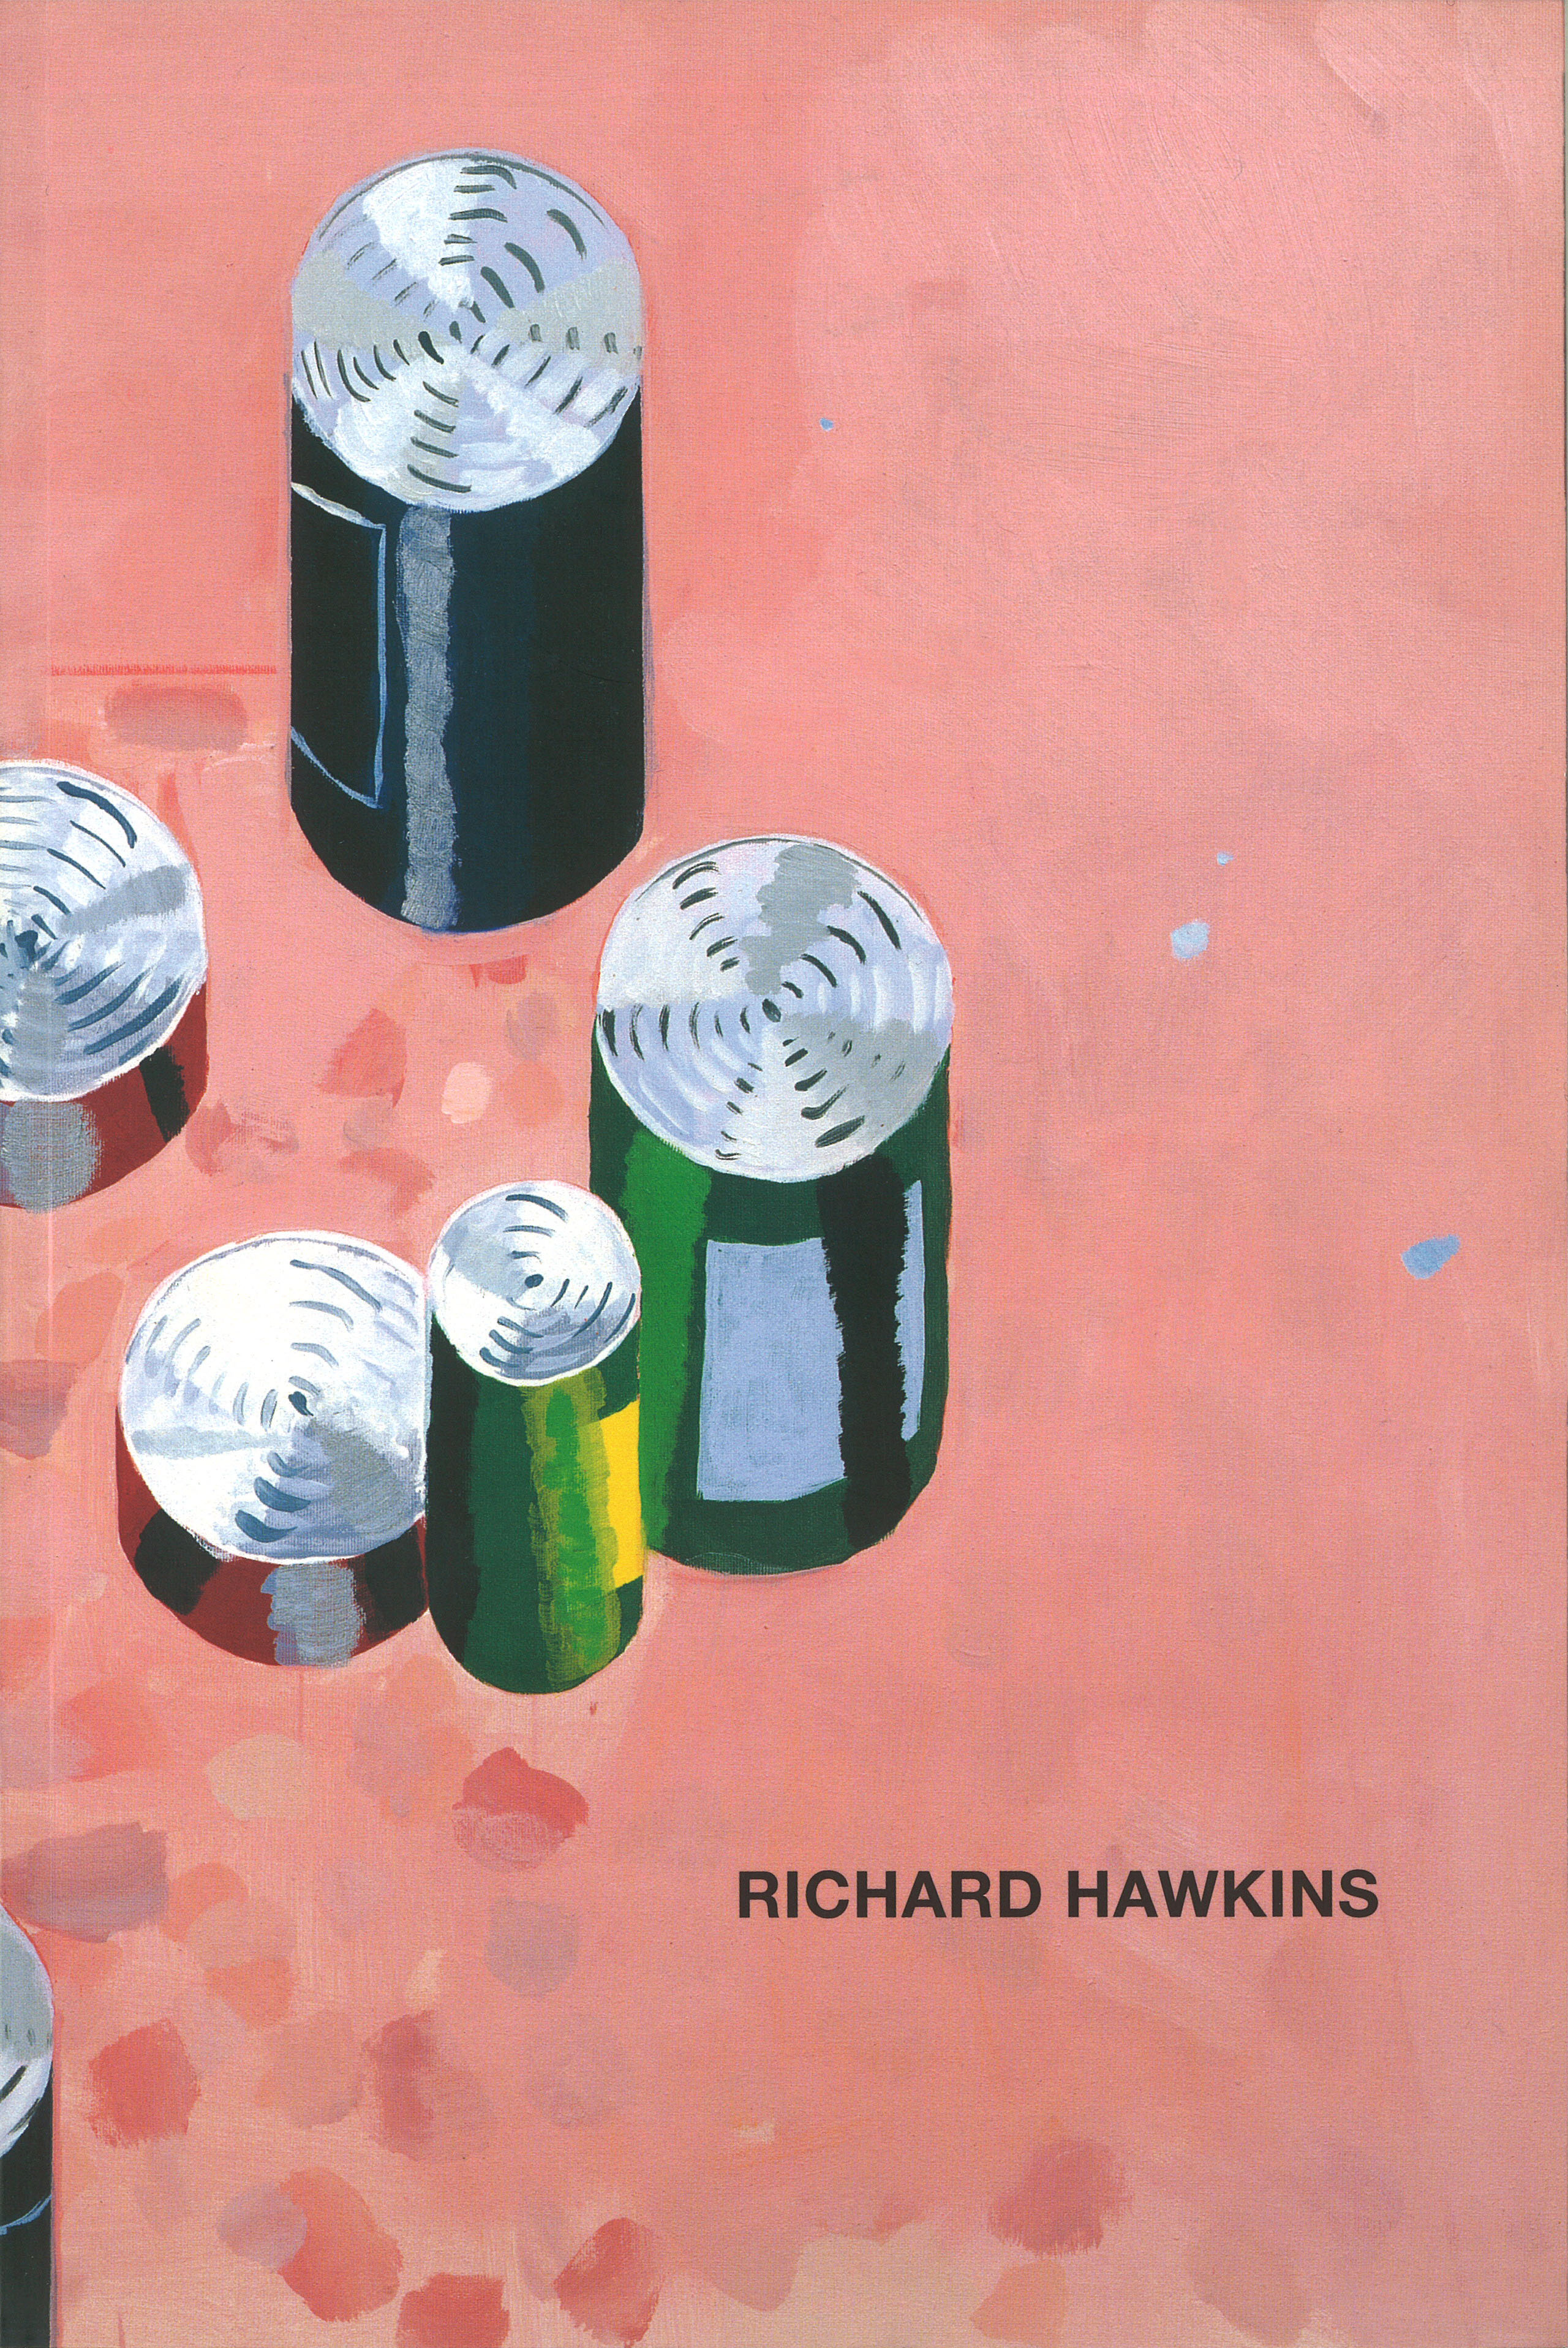 Richard Hawkins – 2003, 64 pages, fully illustrated in color, Owrps, 24,5 x 16,5 cm Edition 1000 out of print – First catalogue on the artist Richard Hawkins, published on the occasion of his solo exhibition at the Kunstverein Heilbronn in September/October 2003. The book includes an essay by Larry Johnson and a text by Richard Hawkins on his most recent paintings, both in English and German.